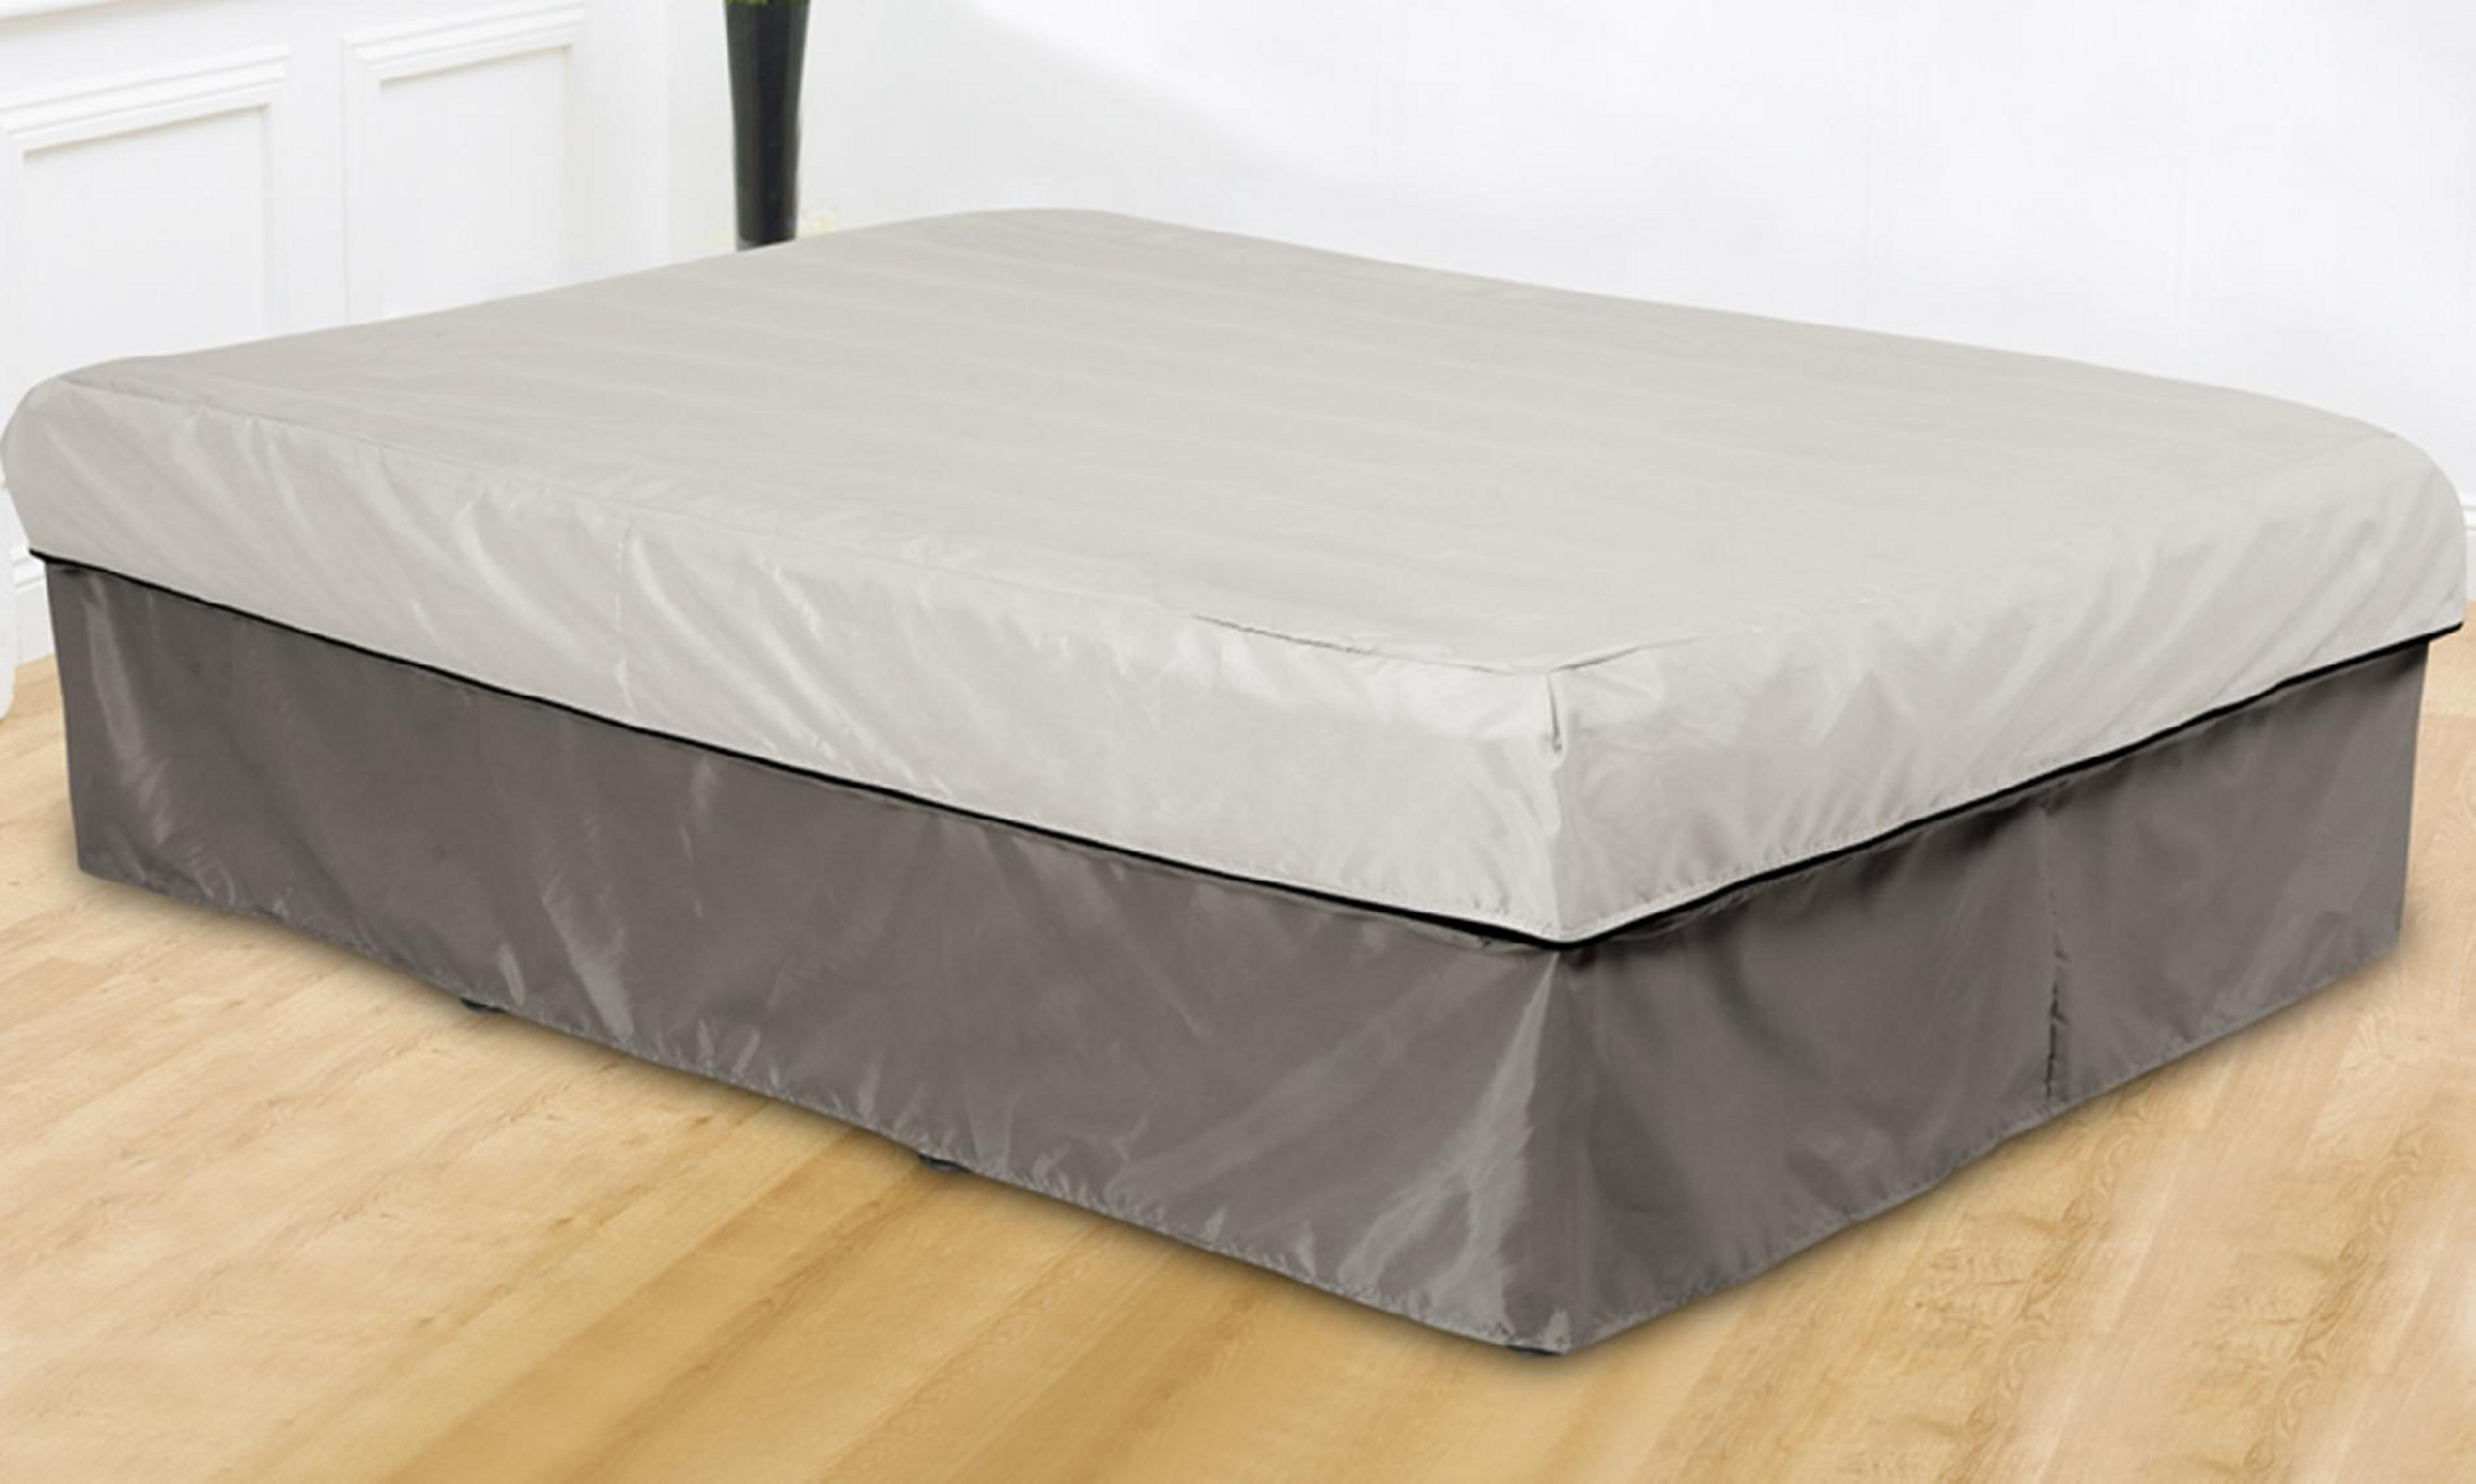 Queen Size Inflatable Air Bed with Skirt Pump Included